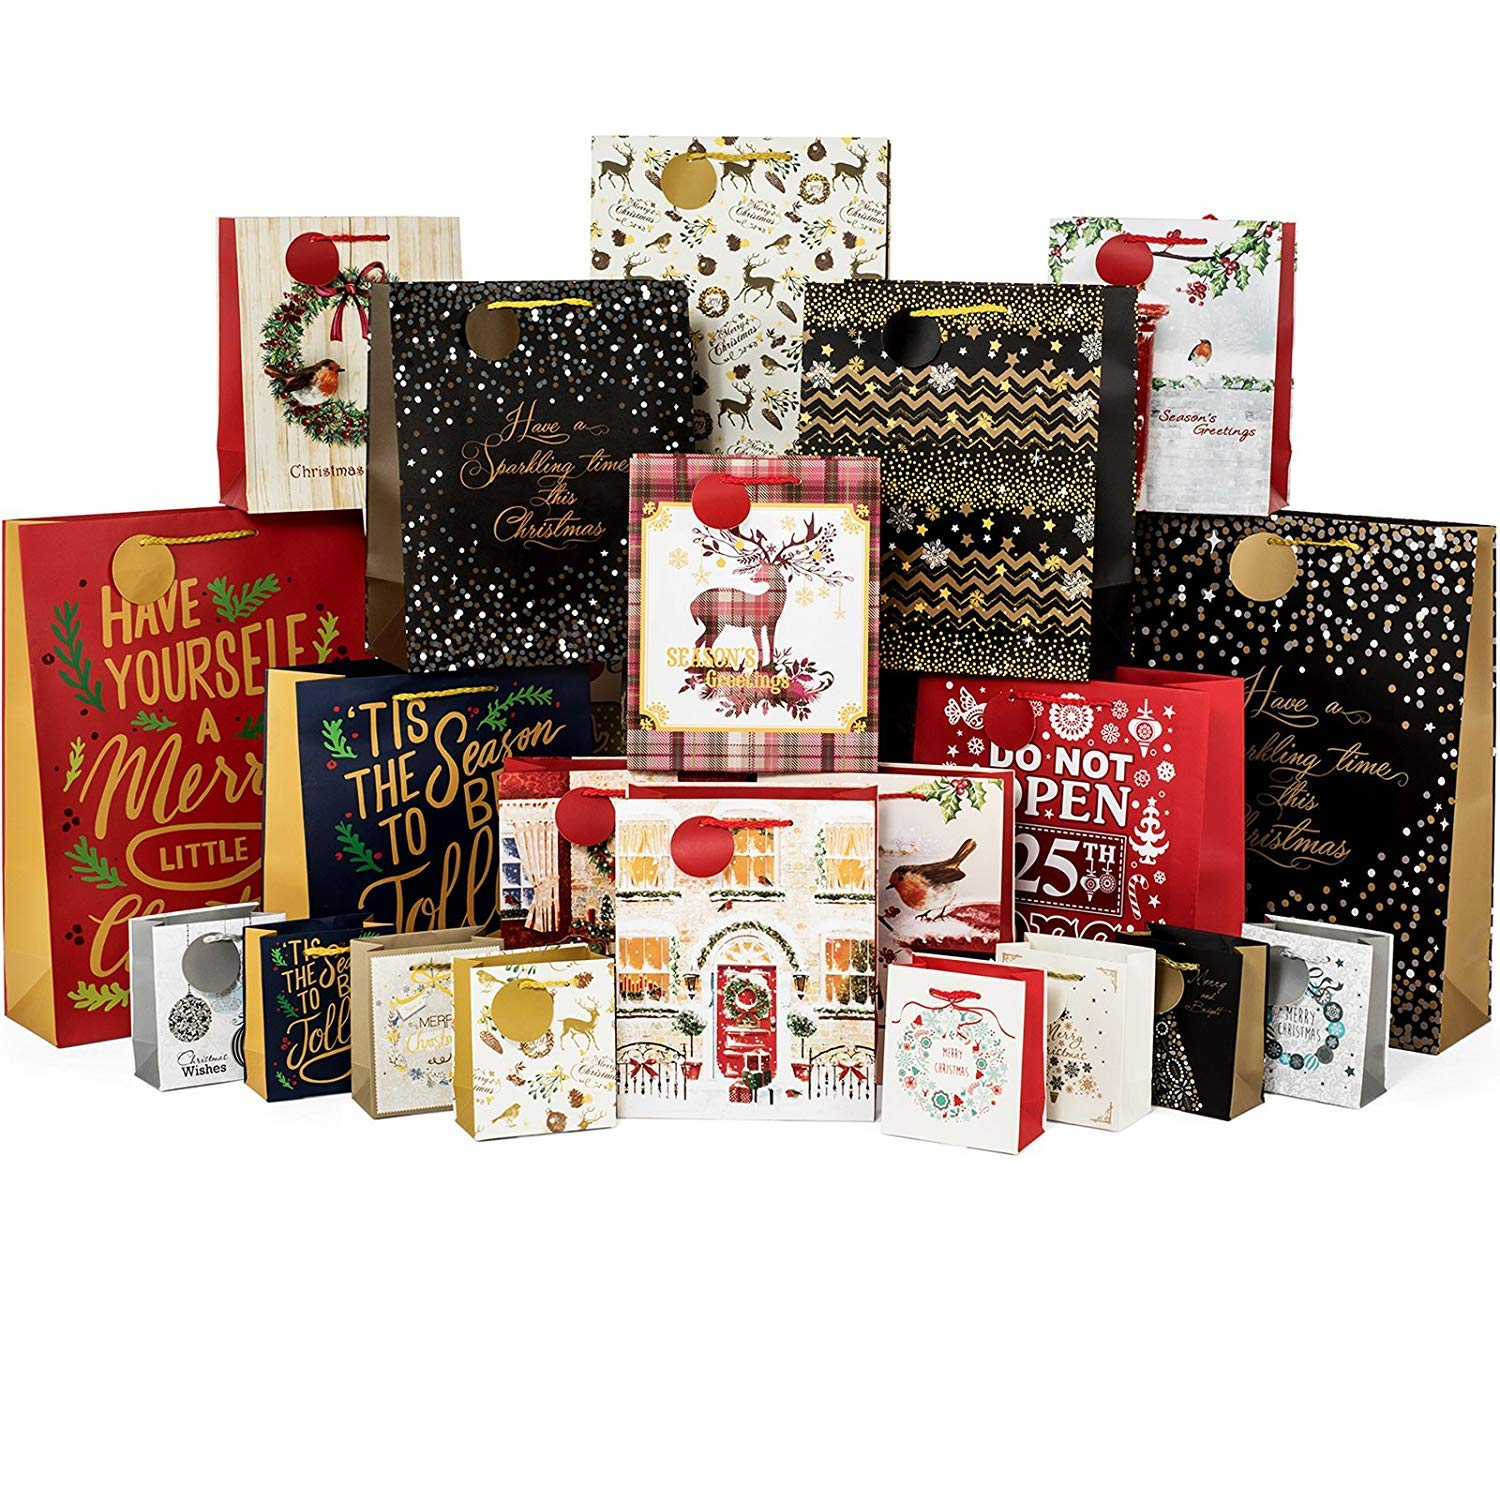 Christmas Bags In Bulk.24 Count Christmas Gift Bags Bulk Set Includes 4 Jumbo 6 Large 6 Medium 8 Small For Wrapping Holiday Gifts